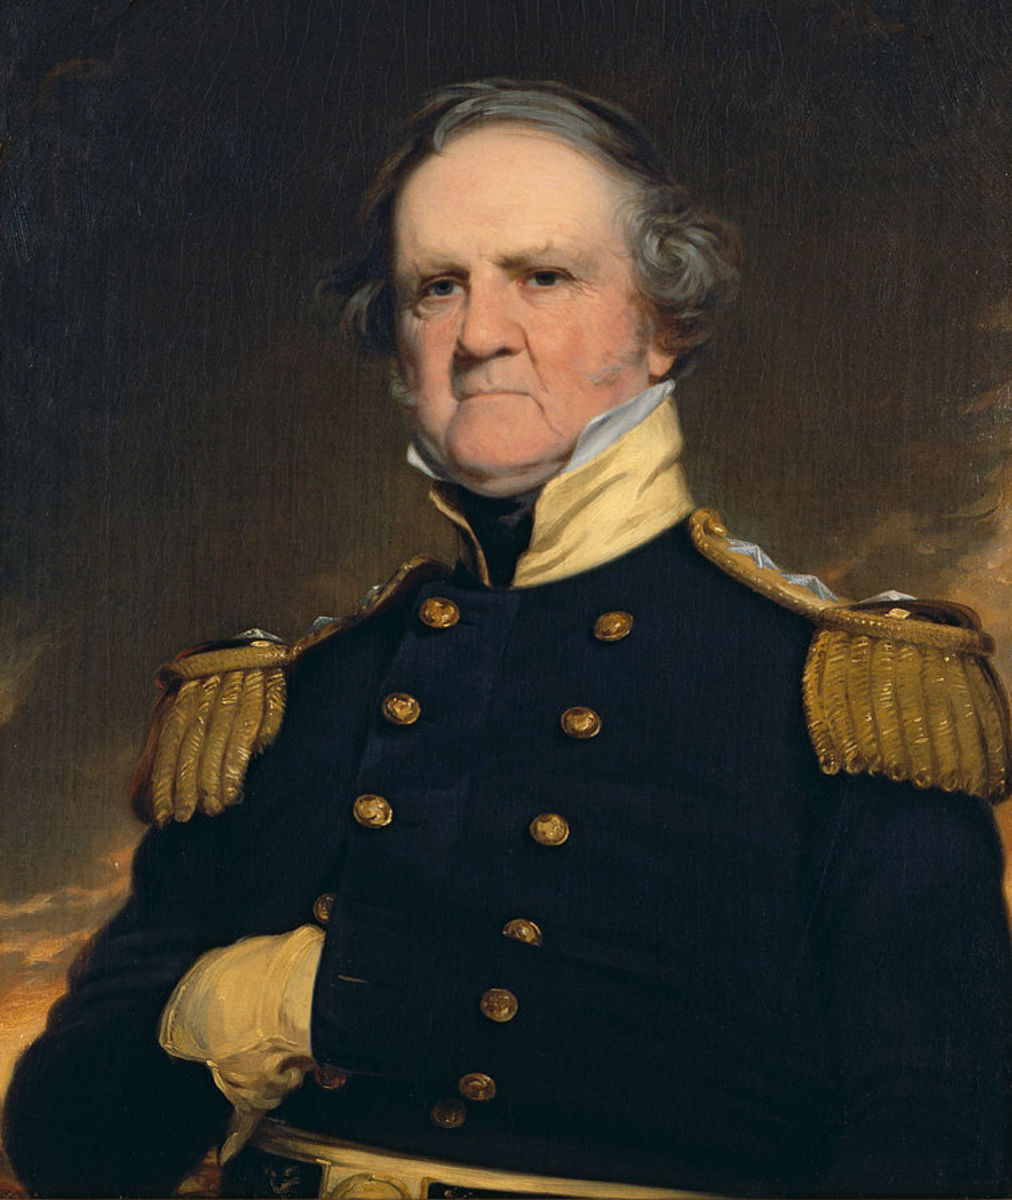 General Winfield Scott: The Grand Old Man of the Army